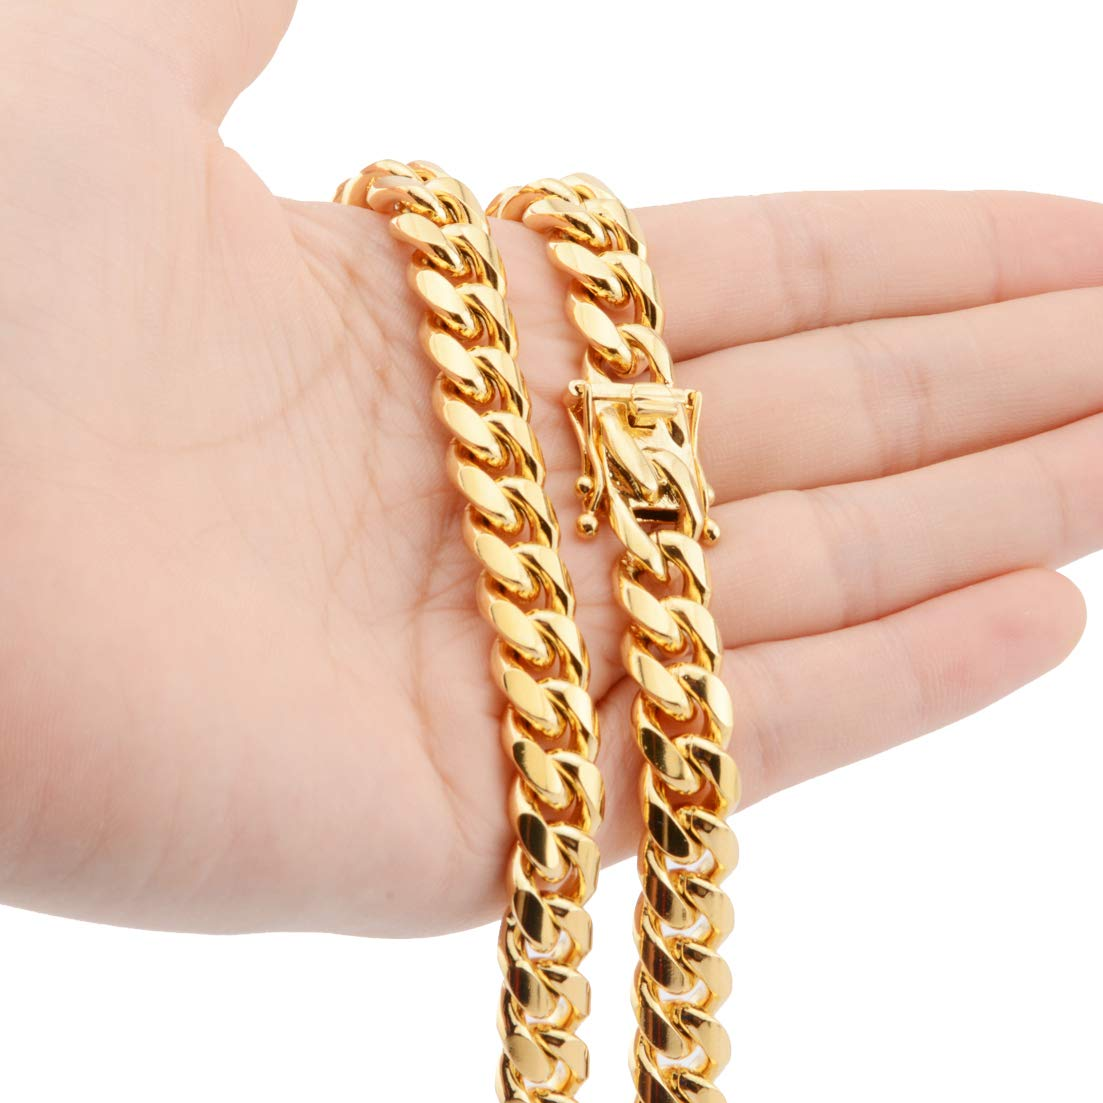 TIASRI Mens Yellow Gold Filled Stainless Steel Curb Cuban Link Miami Chain Strong Male Necklace